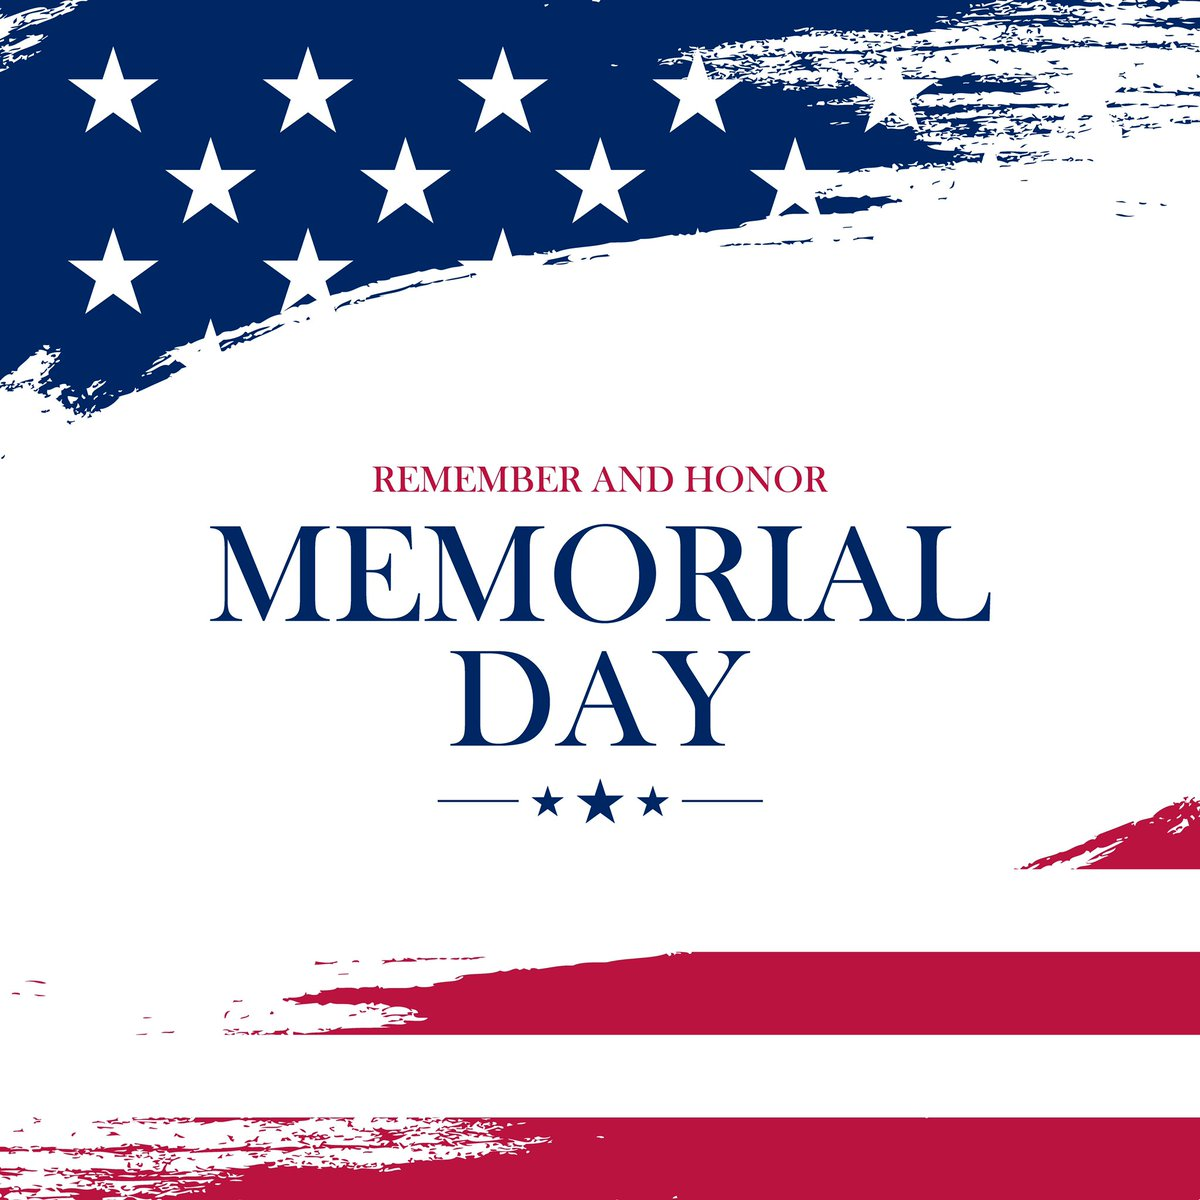 Wishing everyone a Happy Memorial Day, as we remember the brave men and women who died serving our country. Thank you for your service. 🇺🇸🙏 #MemorialDay2020 https://t.co/2Cn5UPZLc8